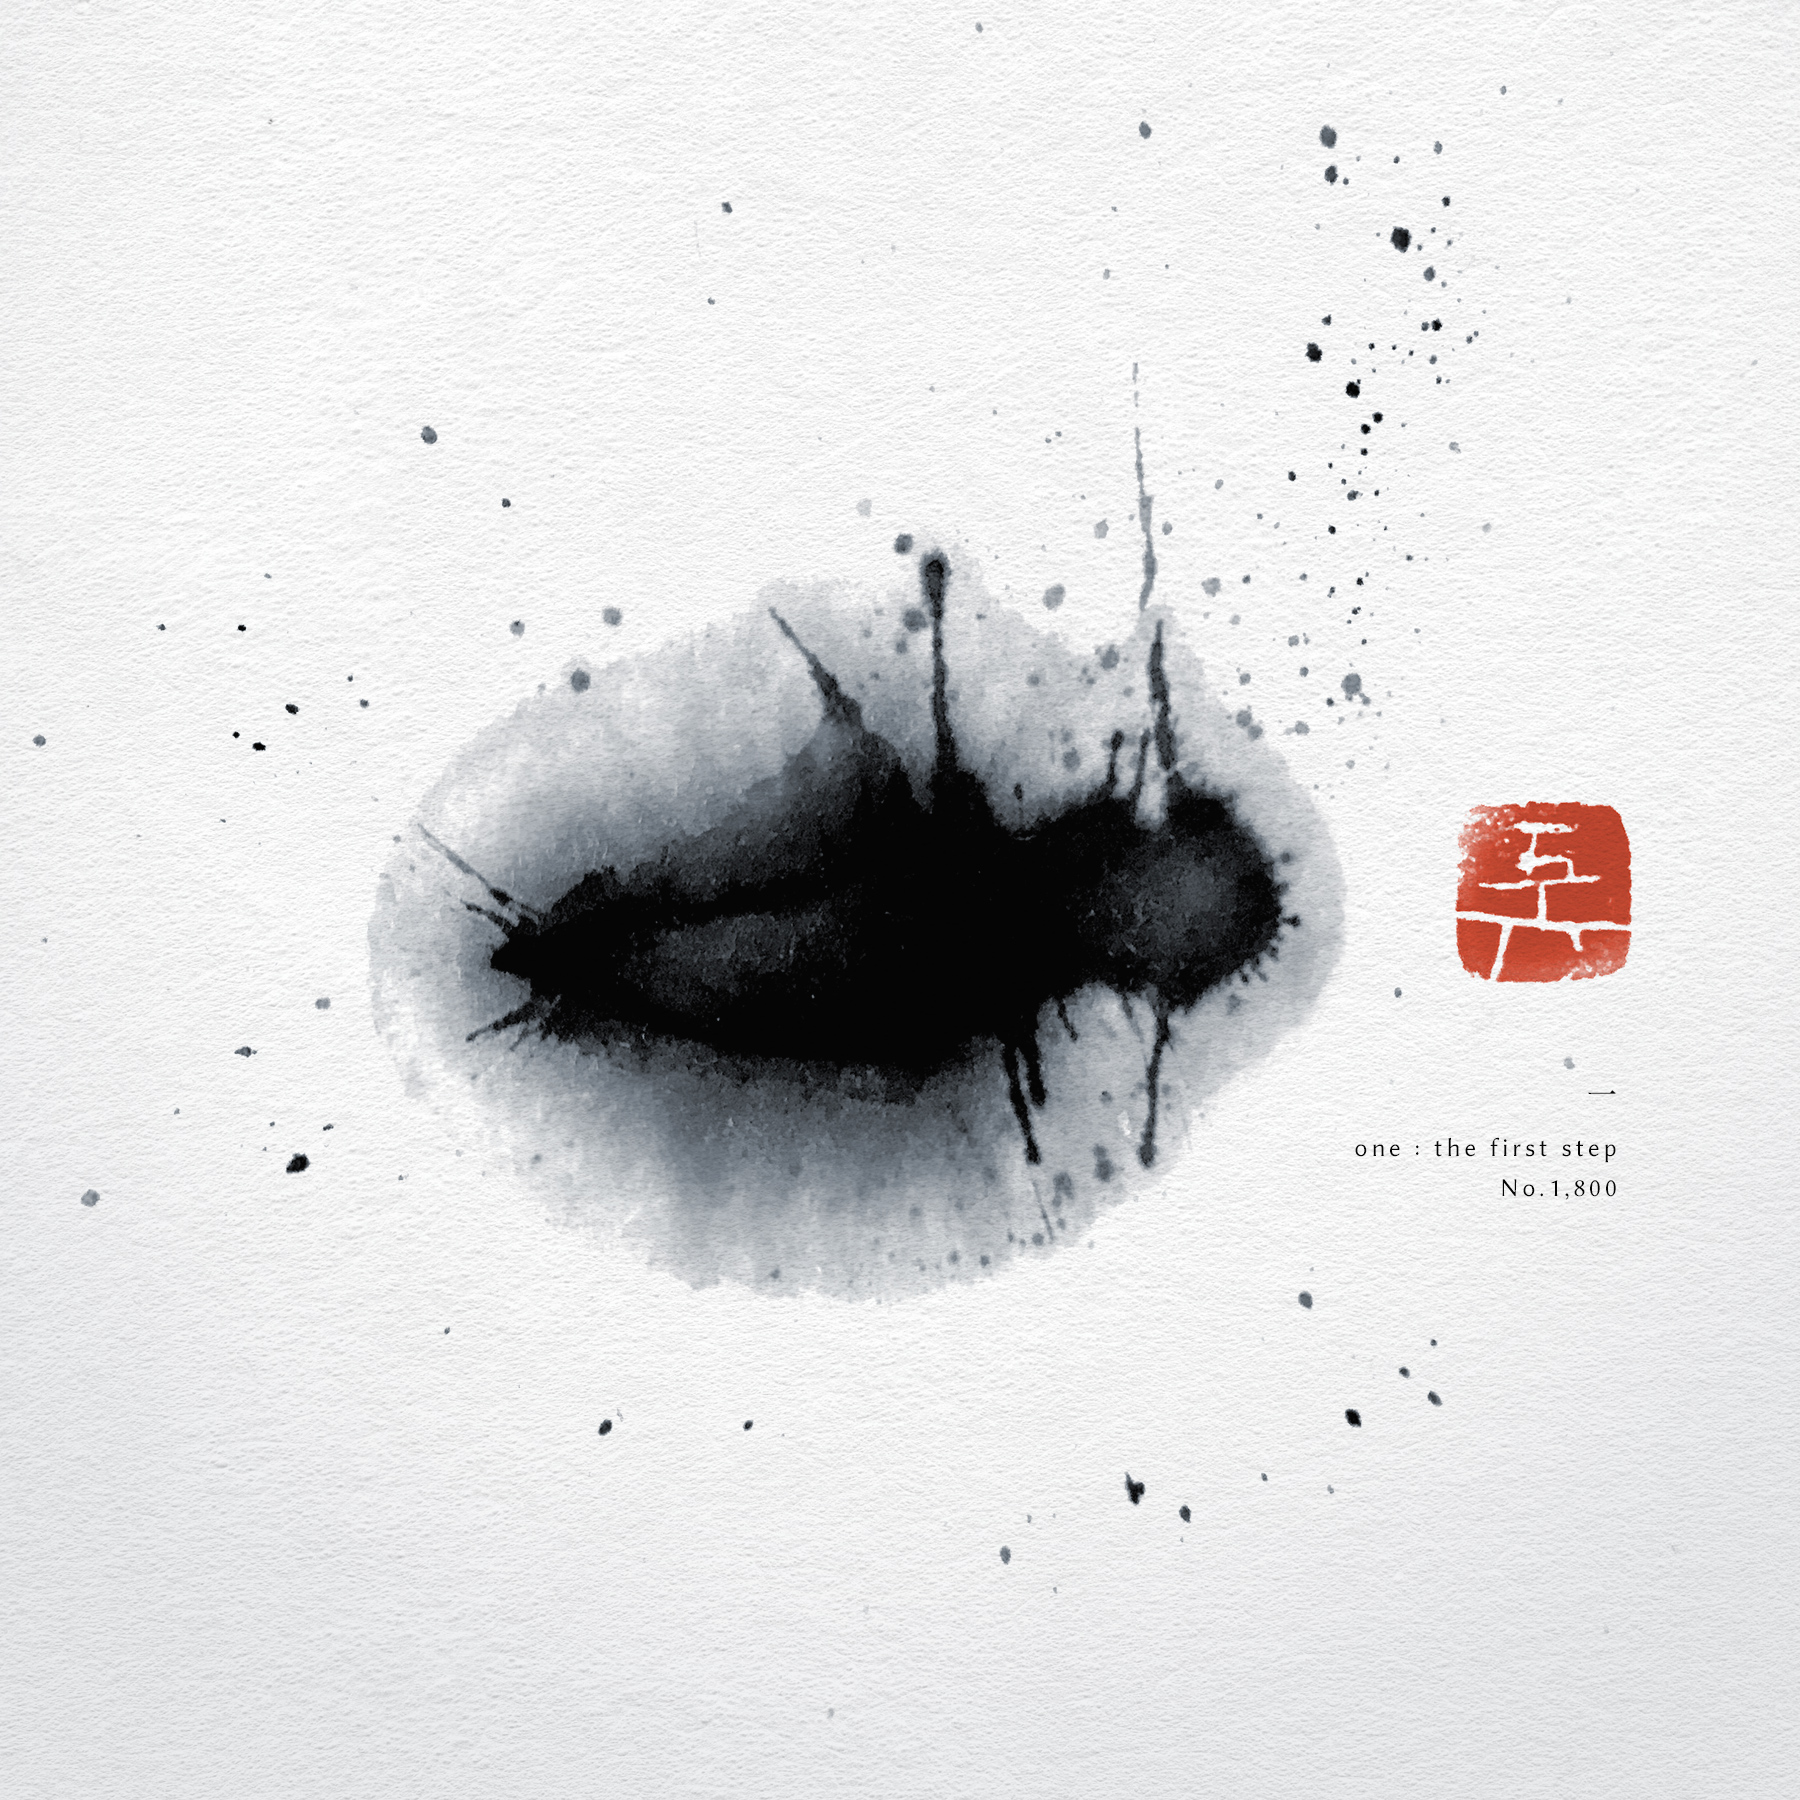 一 | the first step 書道作品 japaneseart japanese calligraphy 書家 田川悟郎 Goroh Tagawa